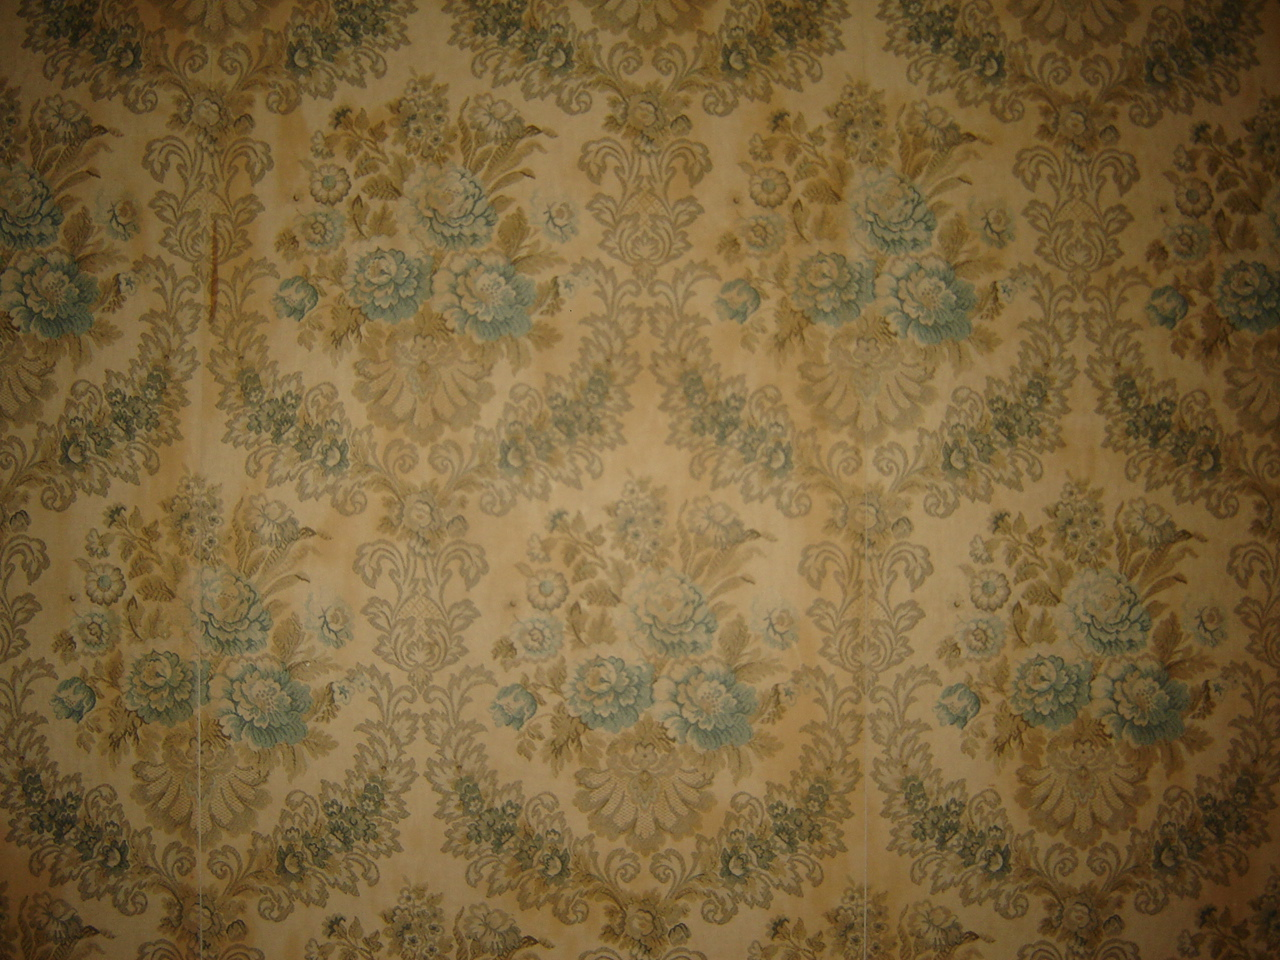 Wallpaper antique 2017 grasscloth wallpaper for Retro images